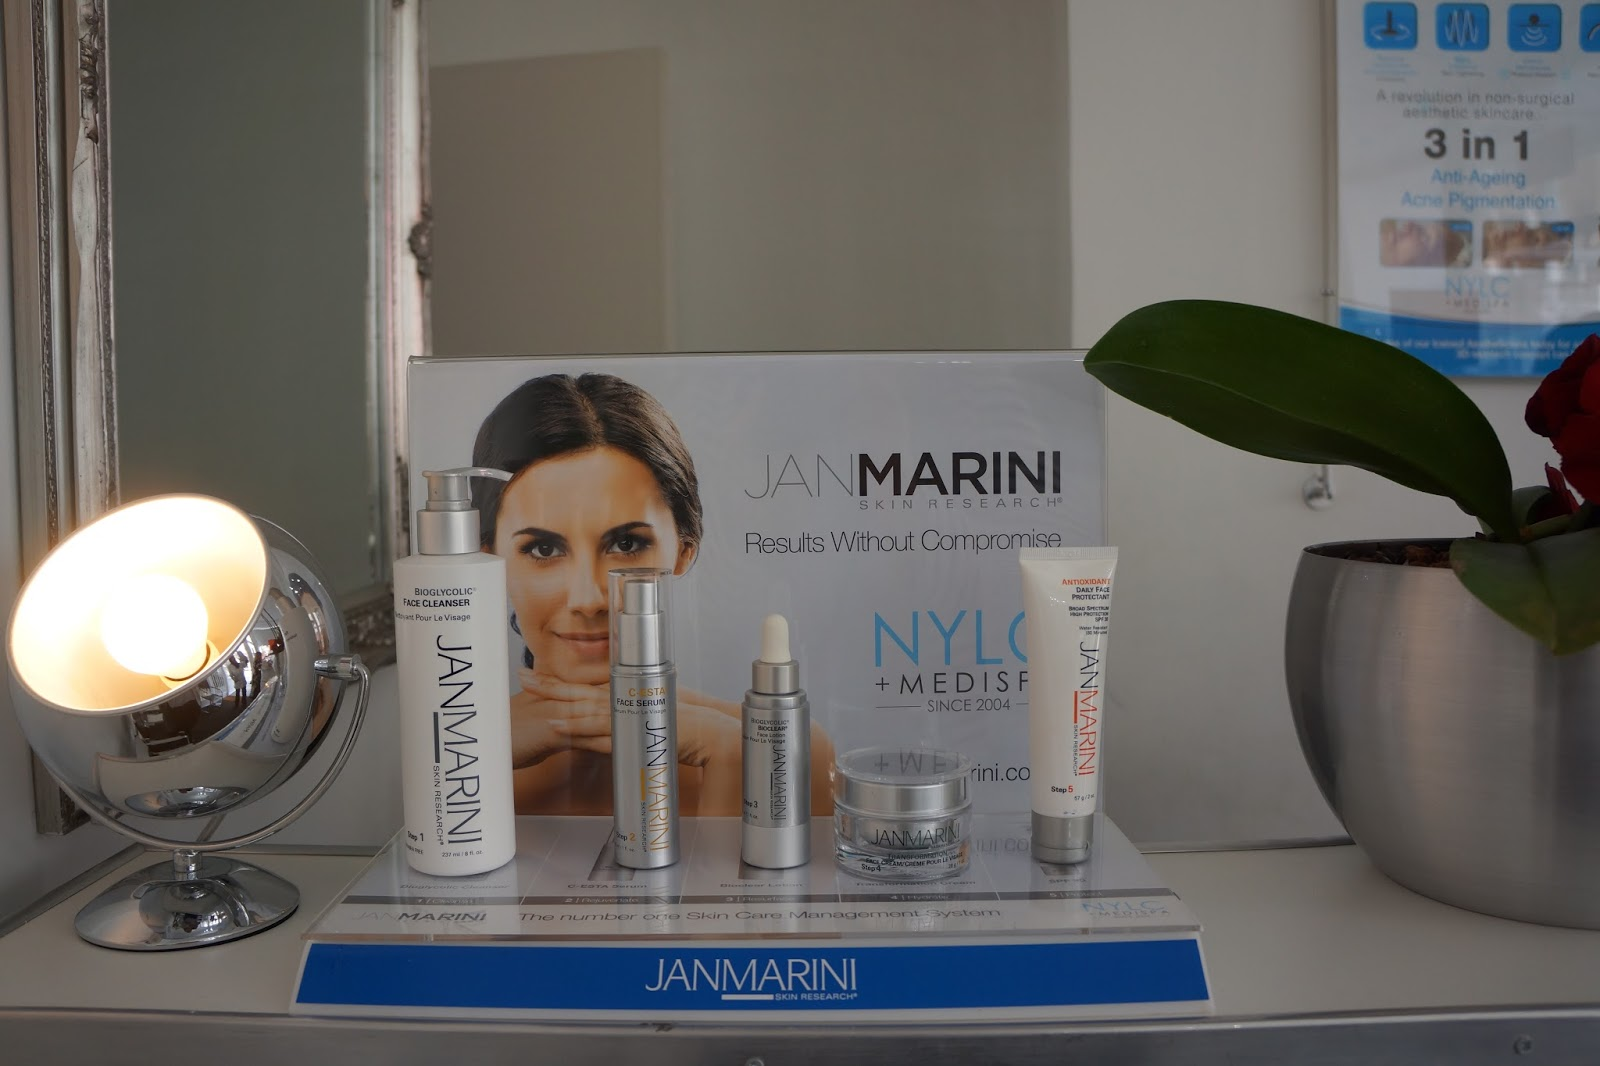 janmarini products